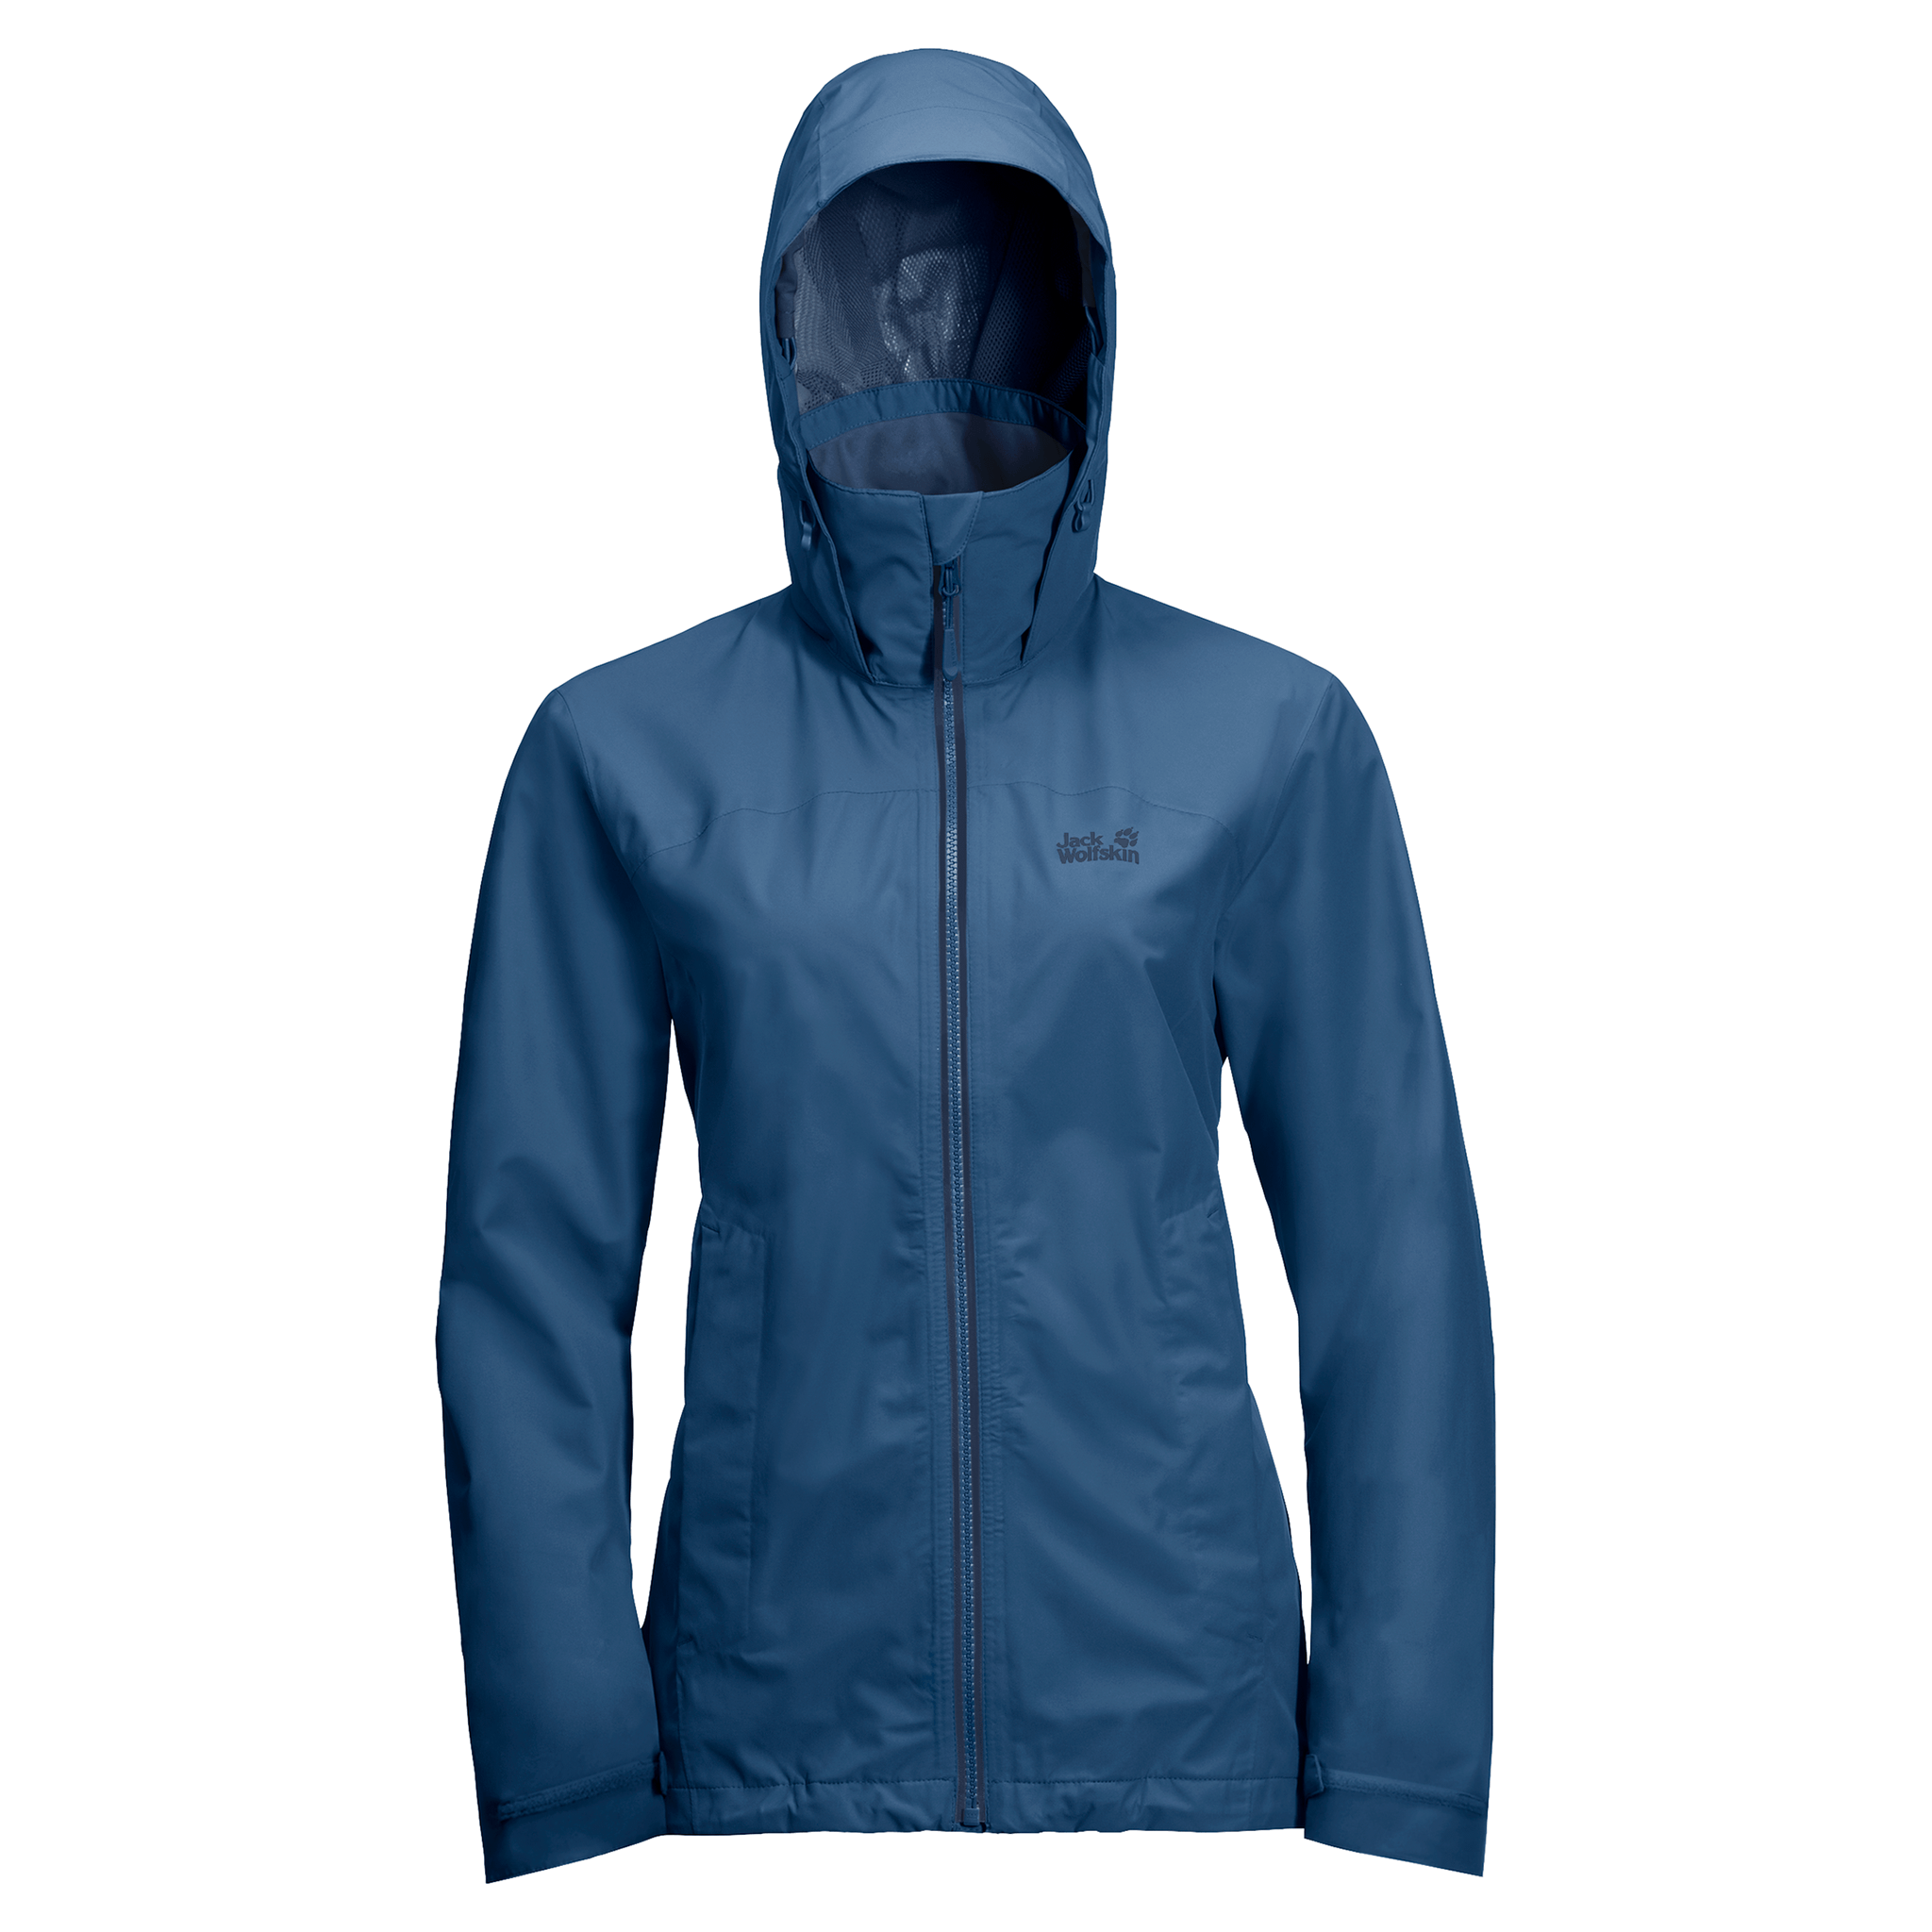 Indigo Blue Lightweight Rain Jacket